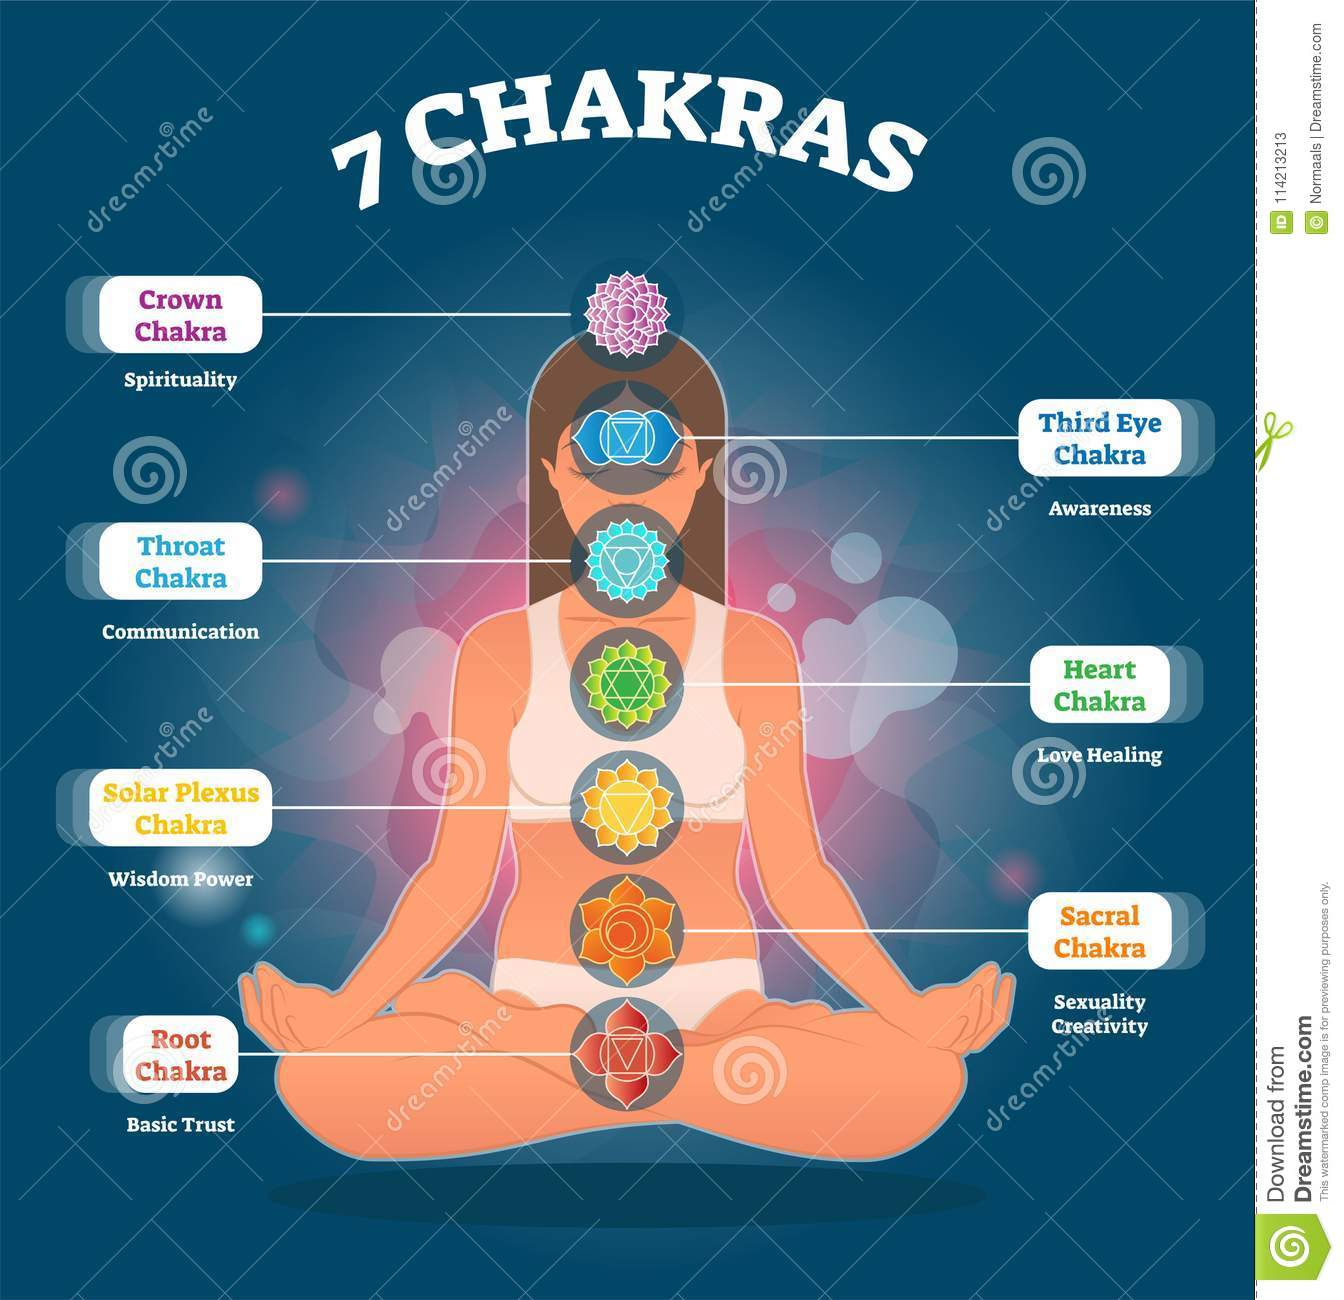 7 Chakra Meanings And Symbols Vector Illustration Diagram With